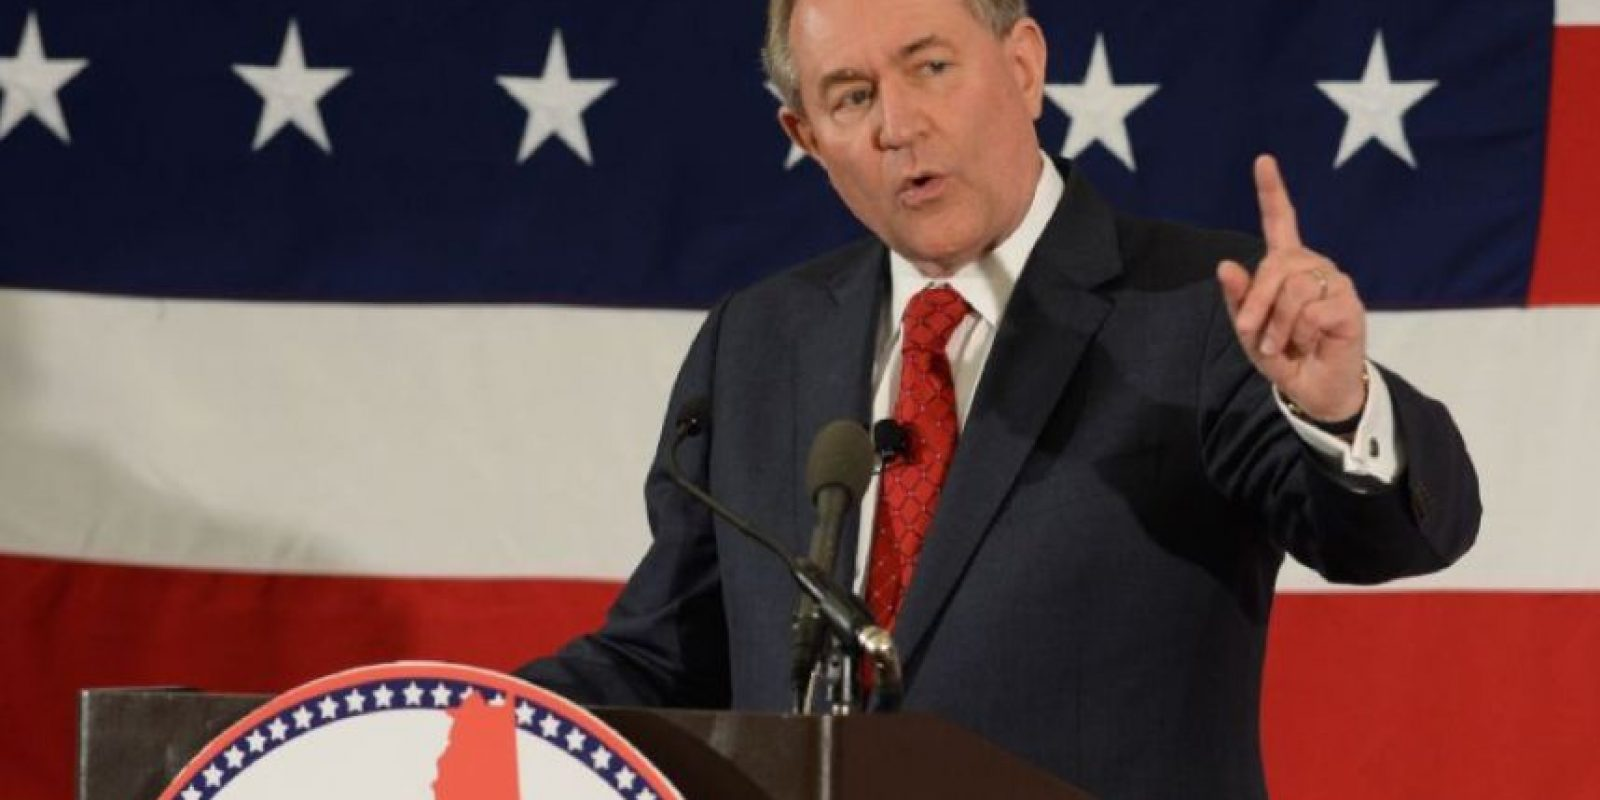 Jim Gilmore Foto: Getty Images